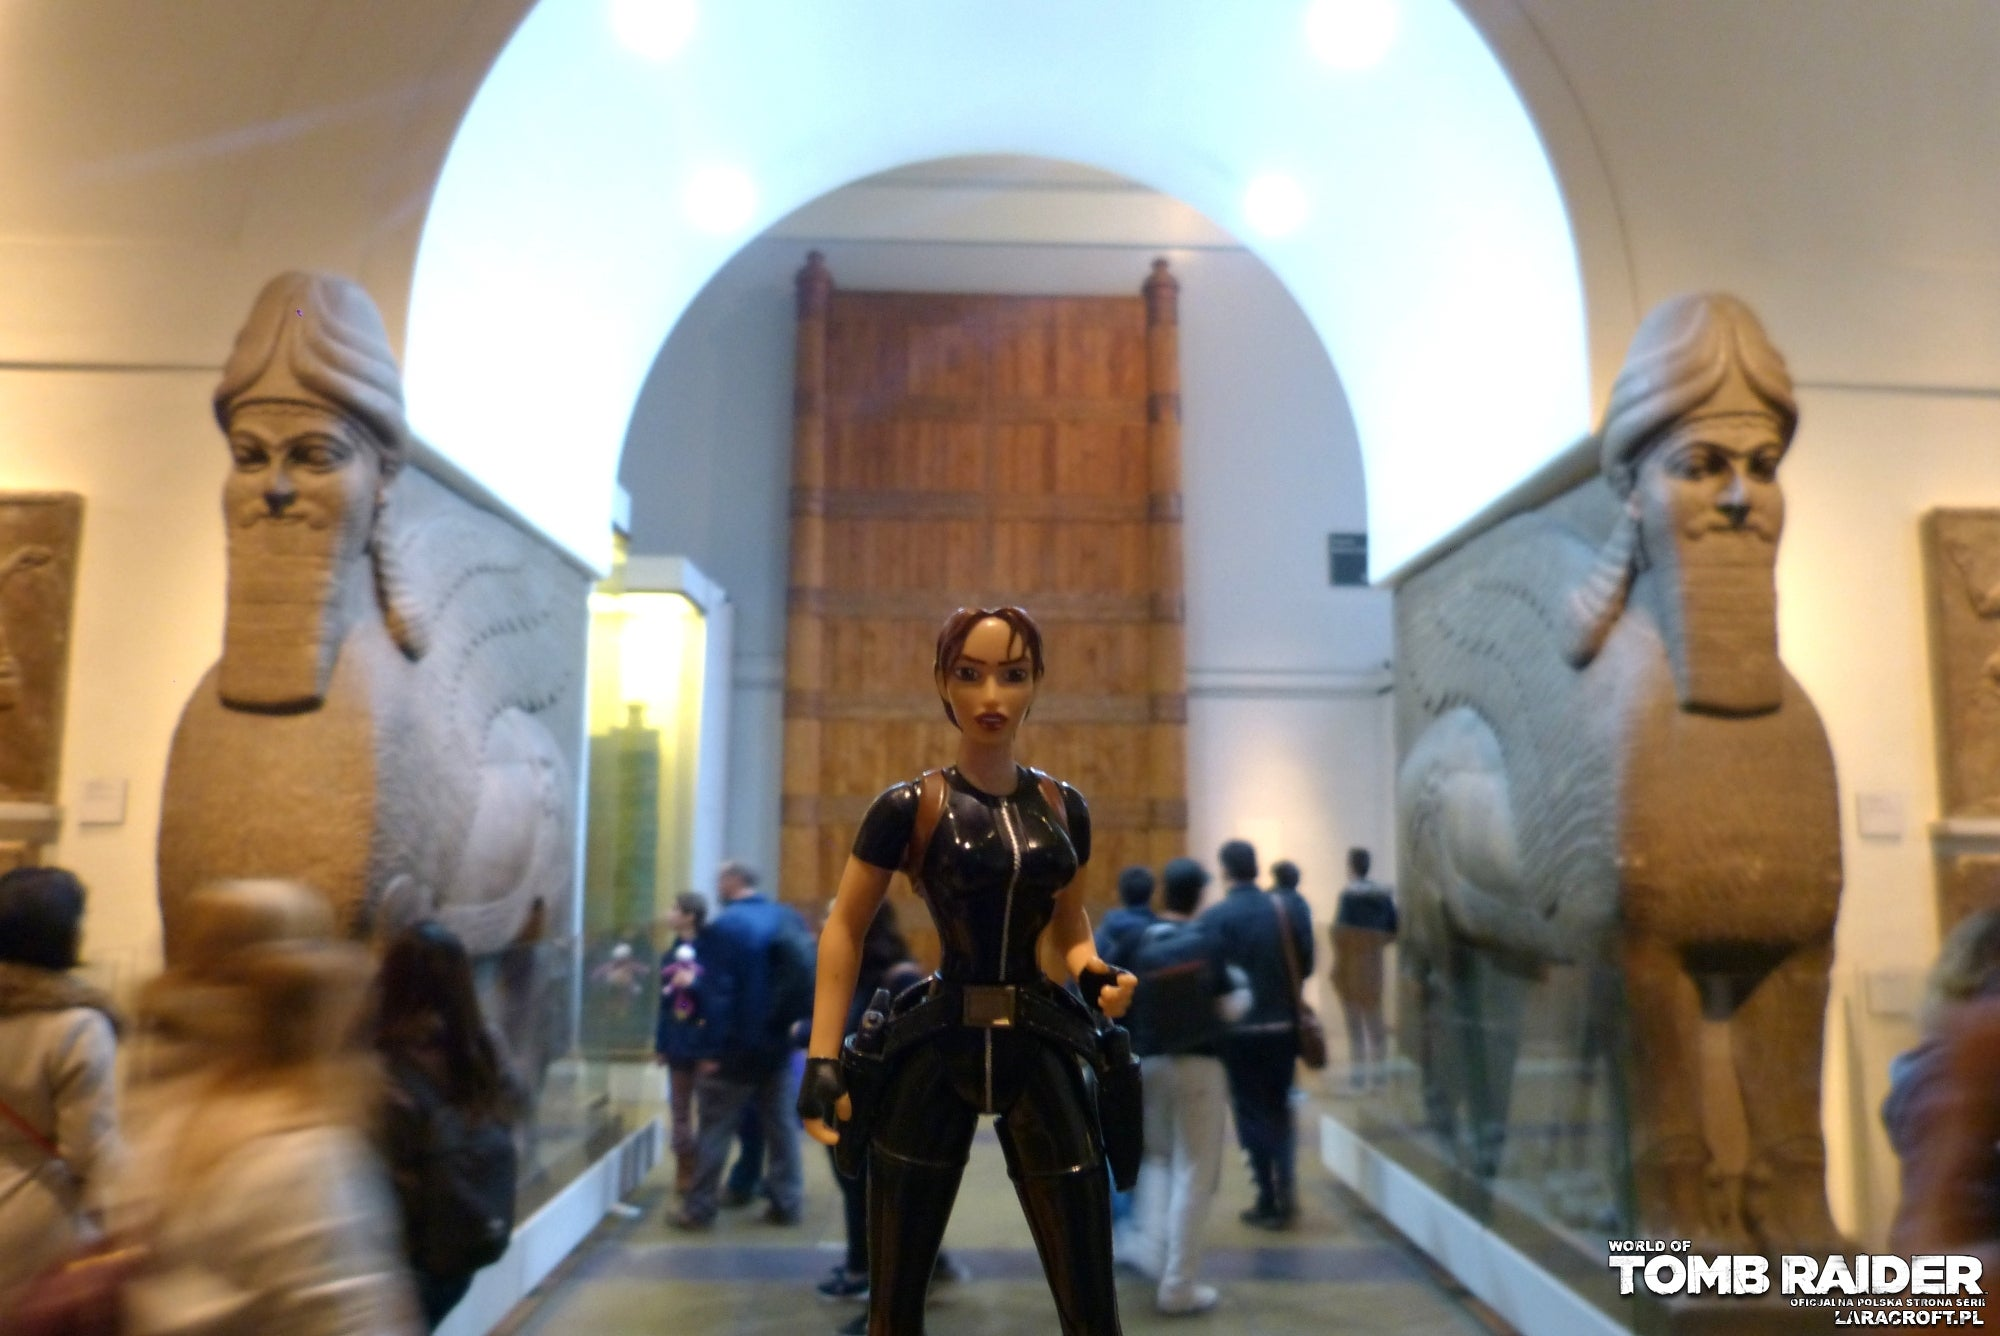 A photograph of a Lara Croft figure inside the Natural History Museum